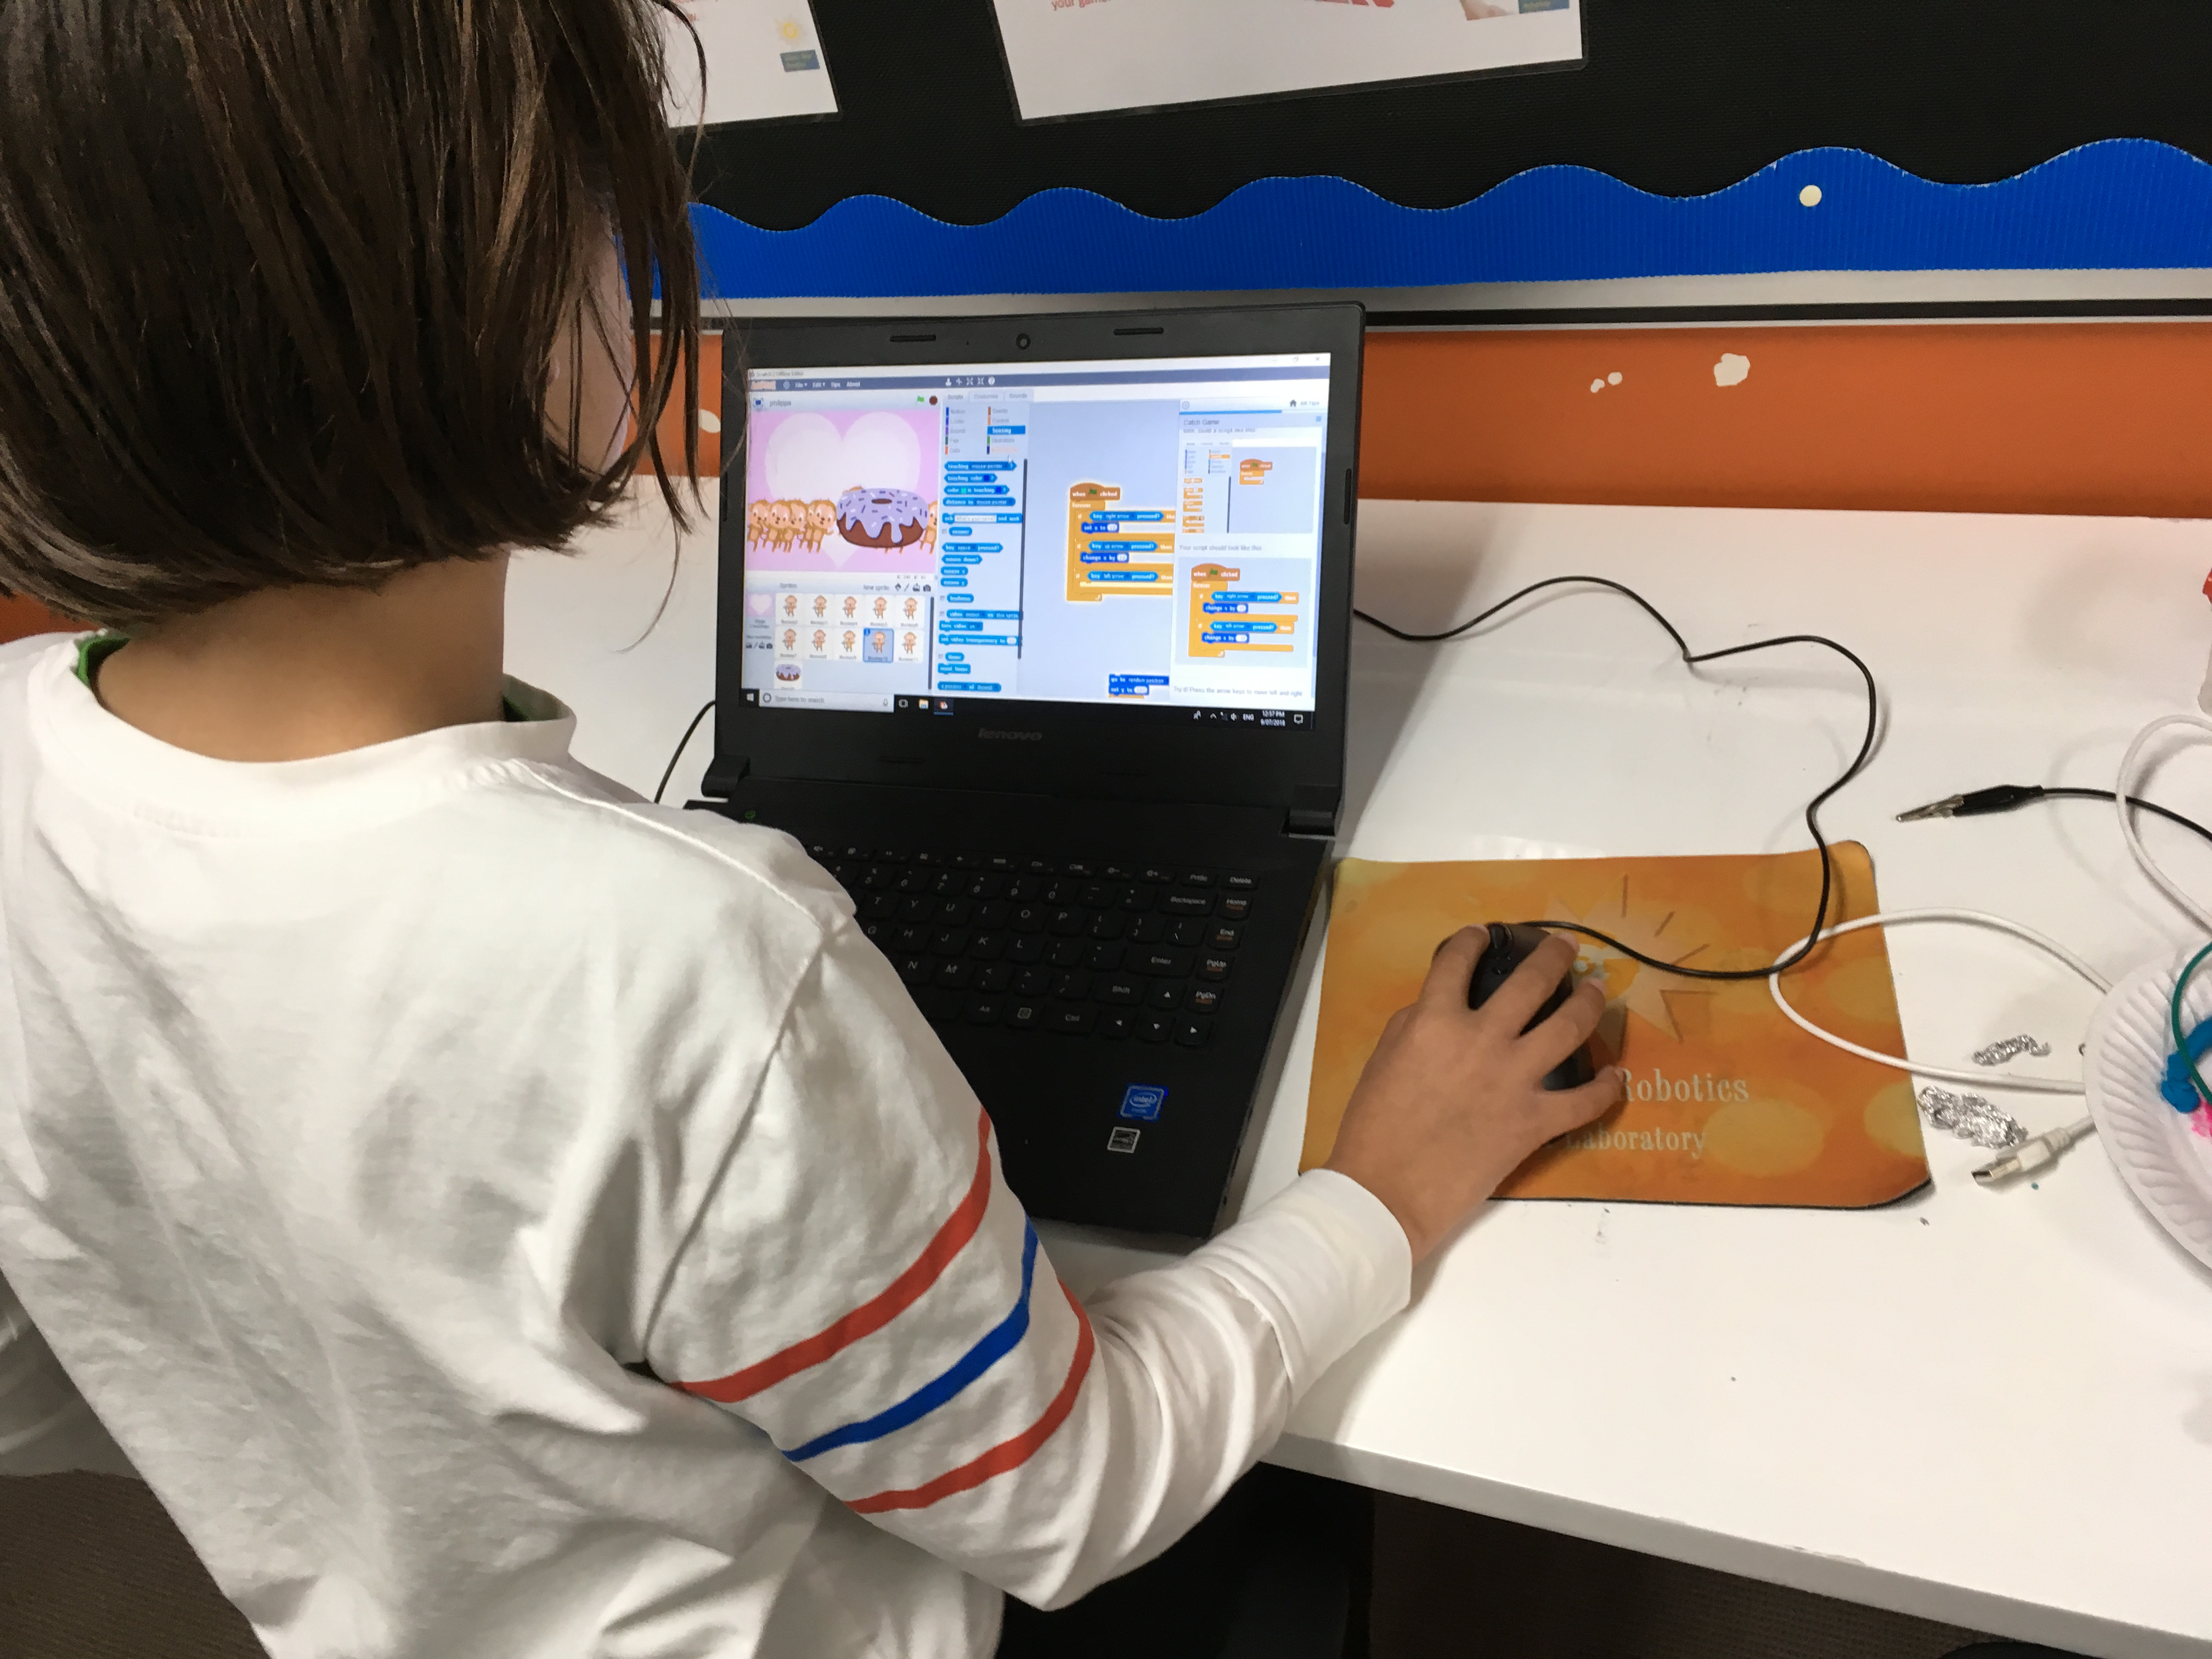 Learning to code with Scratch